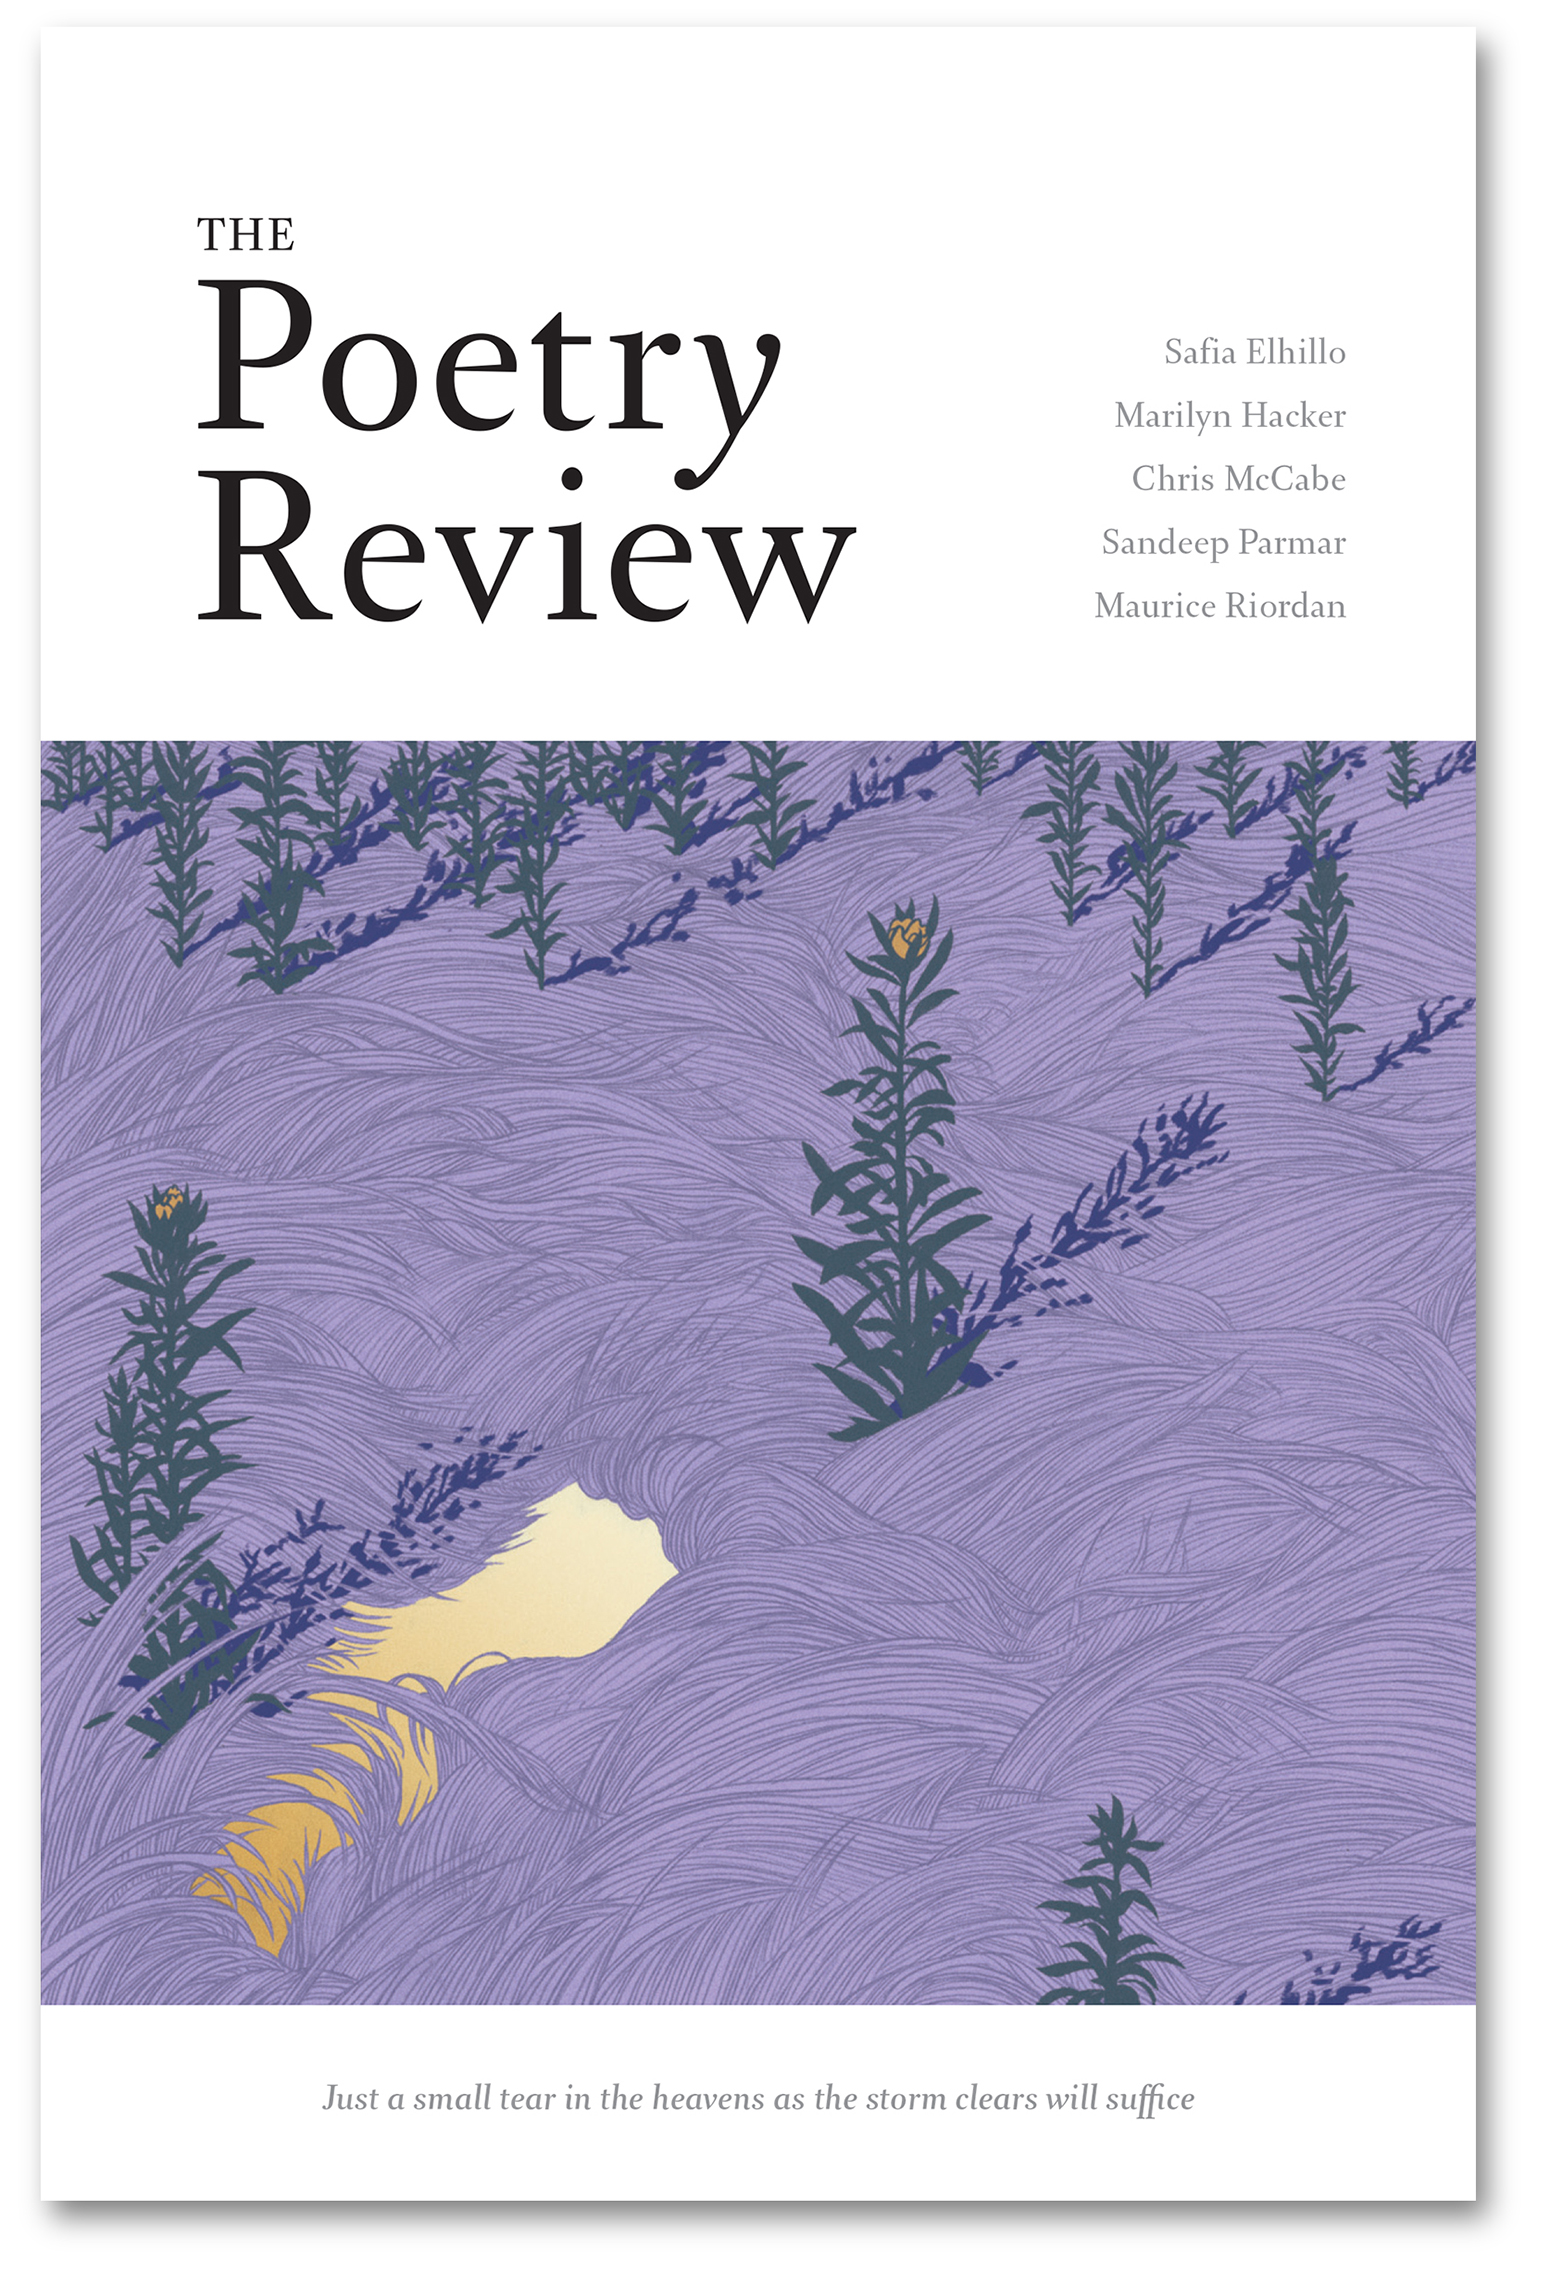 The Poetry Review 1083 with shadow